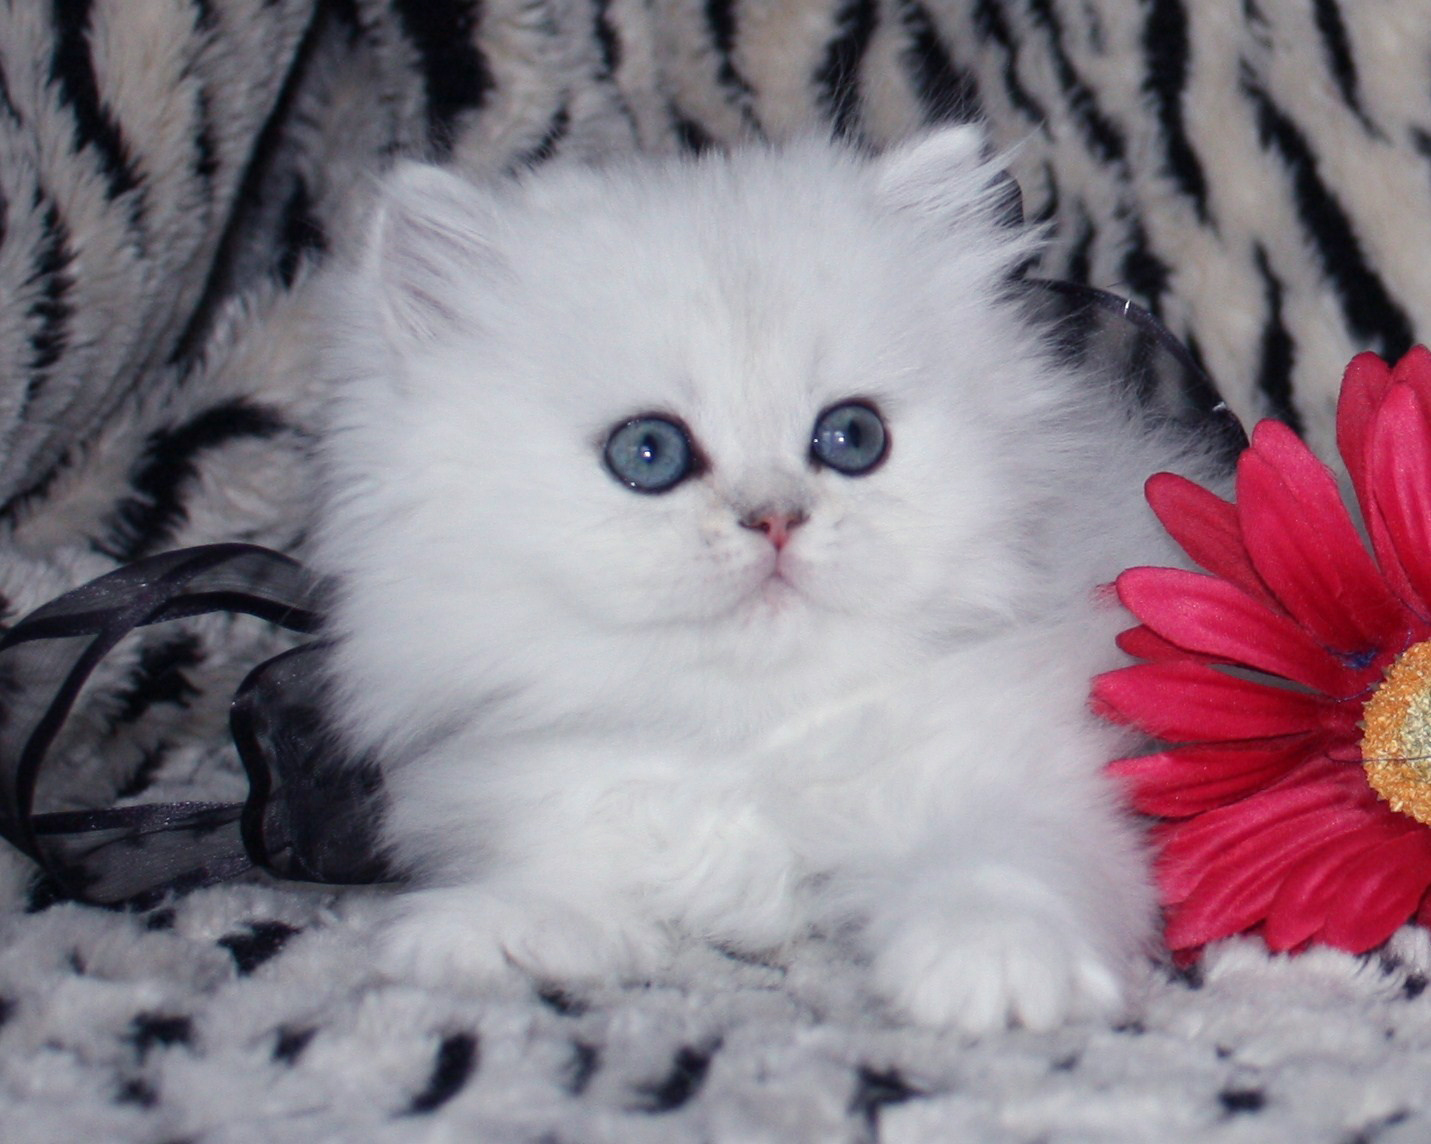 Teacup persian cat – Popular breeds of cats photo blog